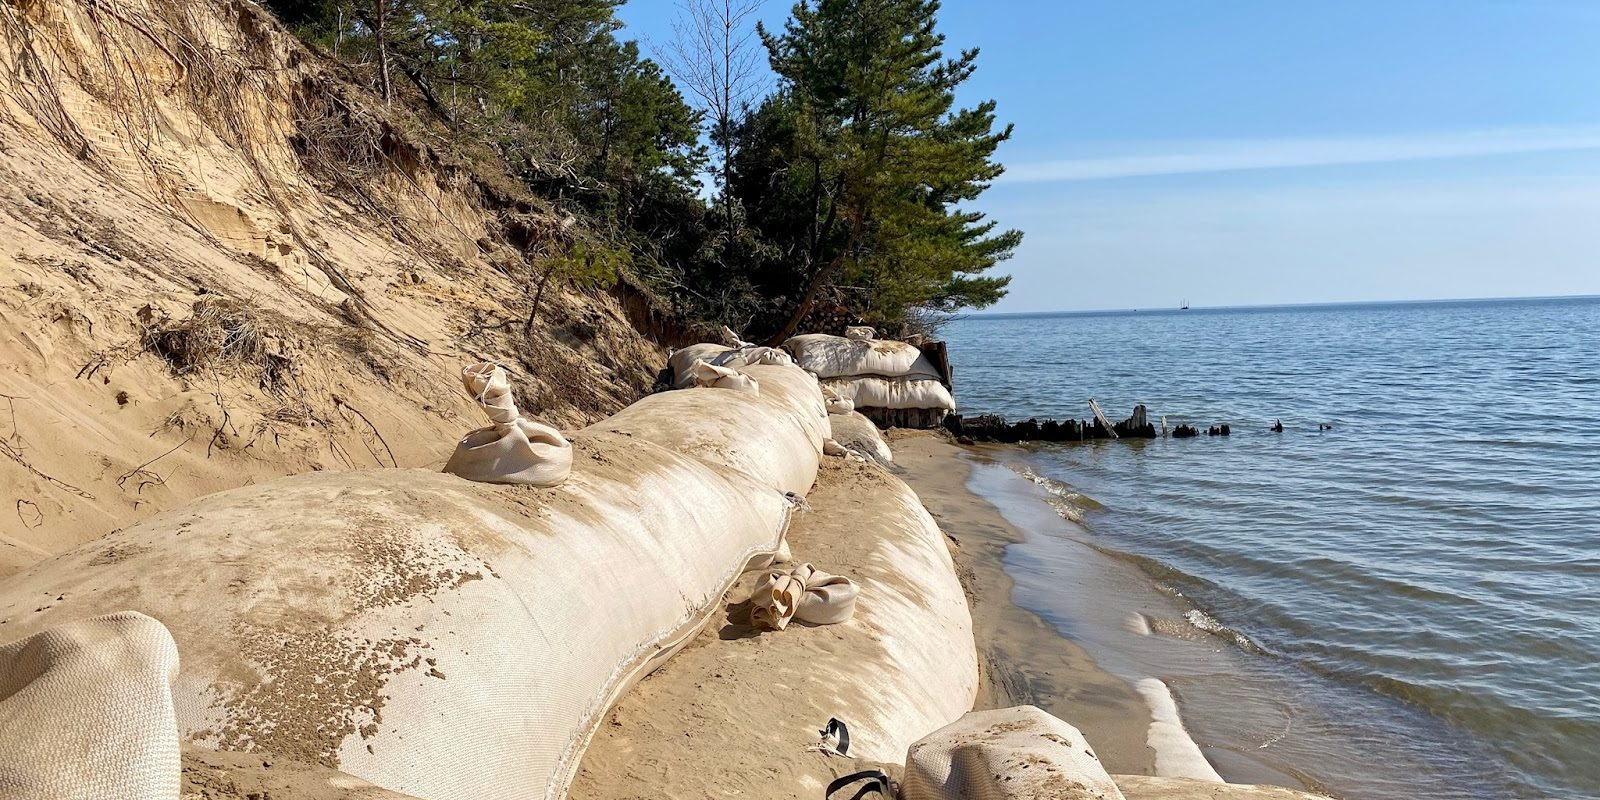 Geotubes on a lakeshore